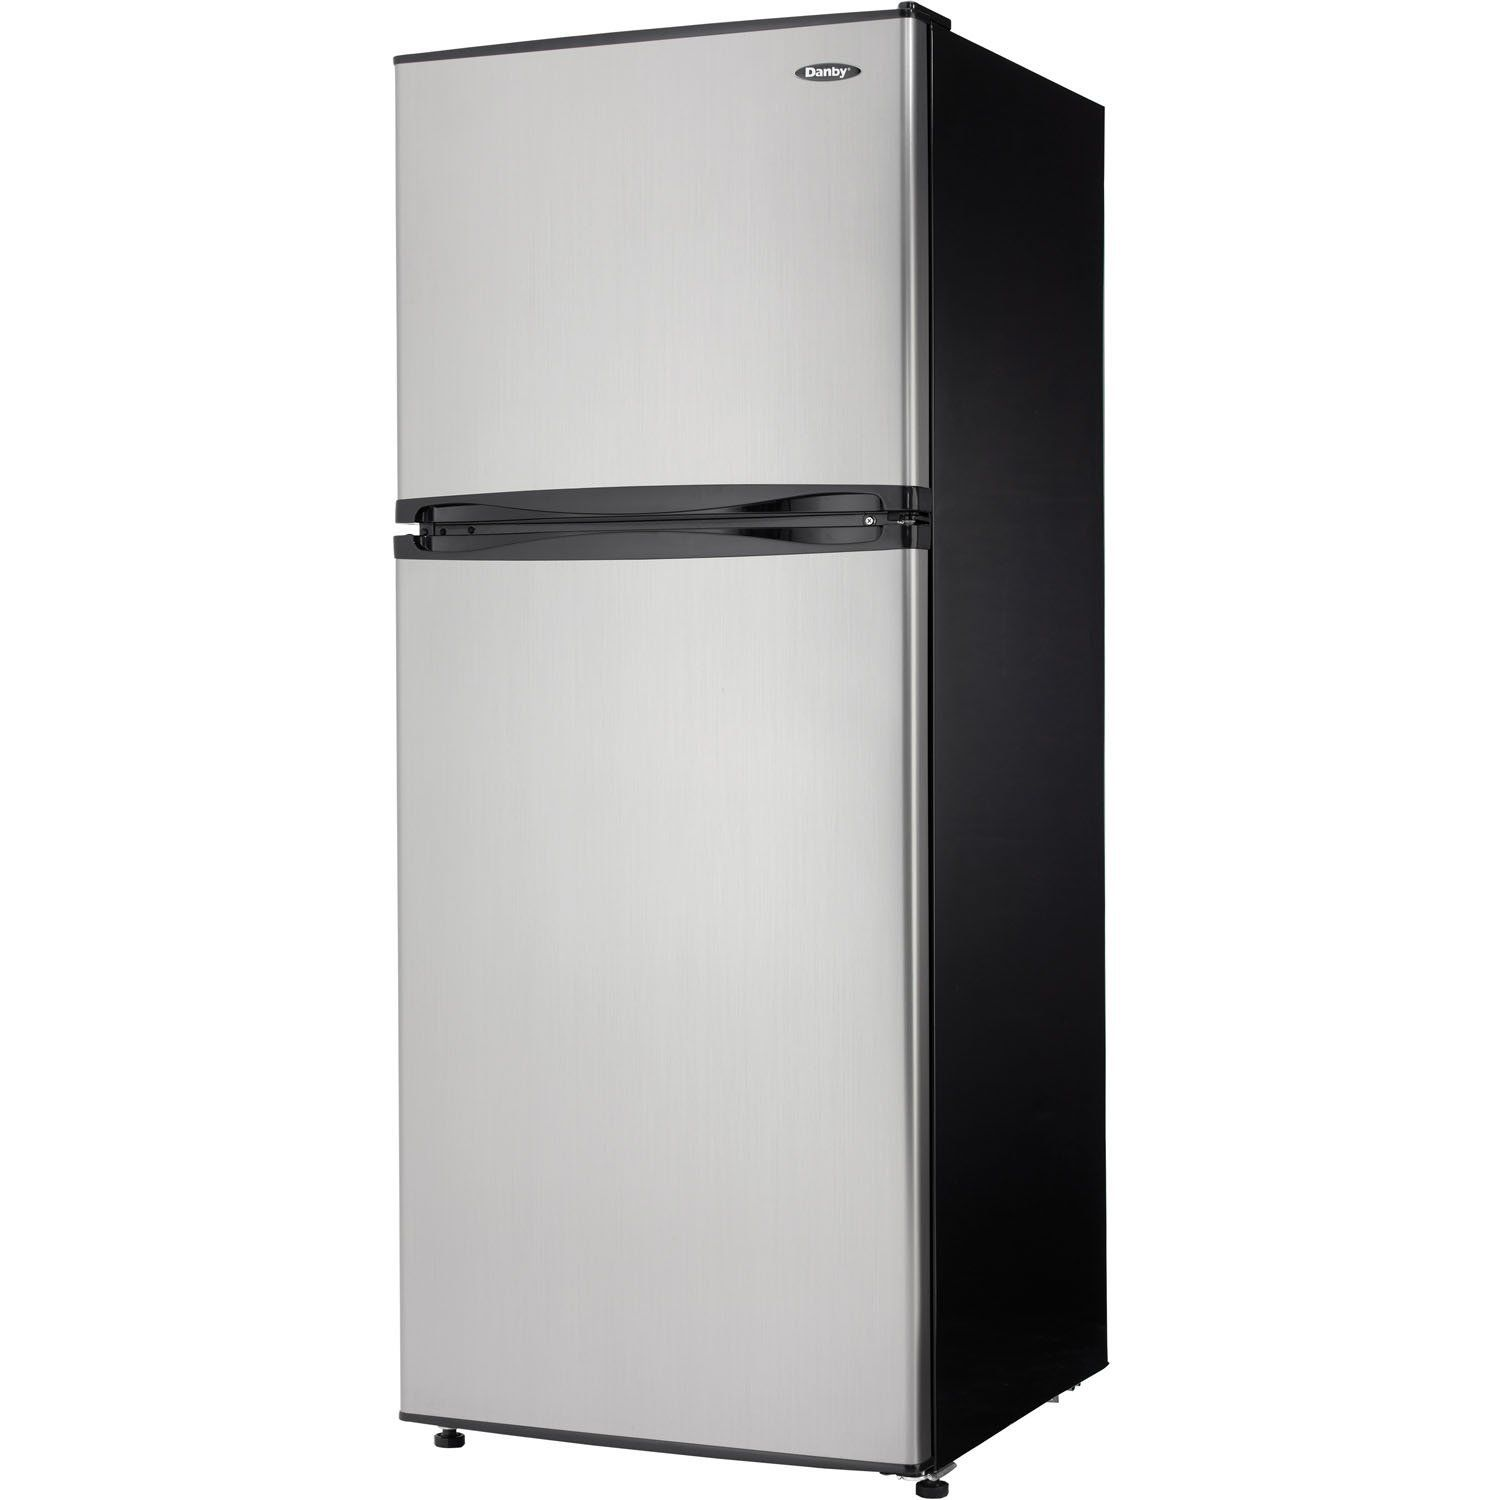 Amazon.com: Danby DFF100C1BSLDB Refrigerator with Top-Mount Freezer ...